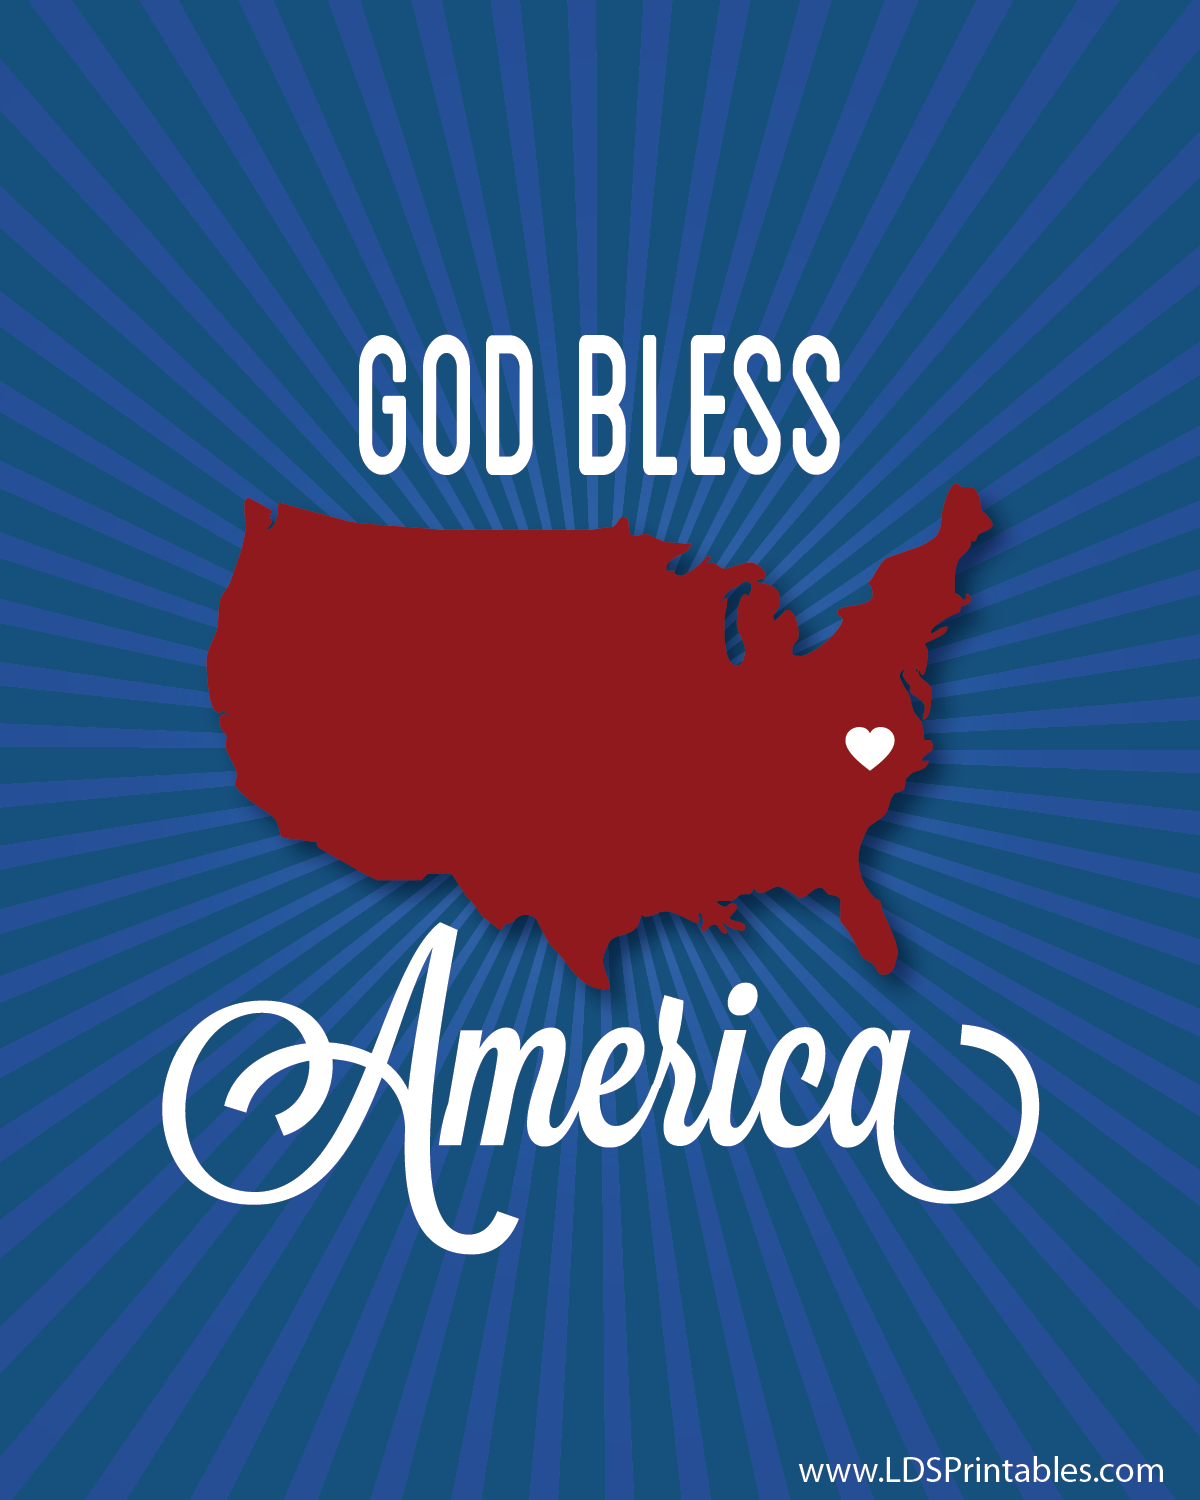 god bless america free printable art print set fourth of july 4th of july americana decor home cheap frugal gift idea hostess